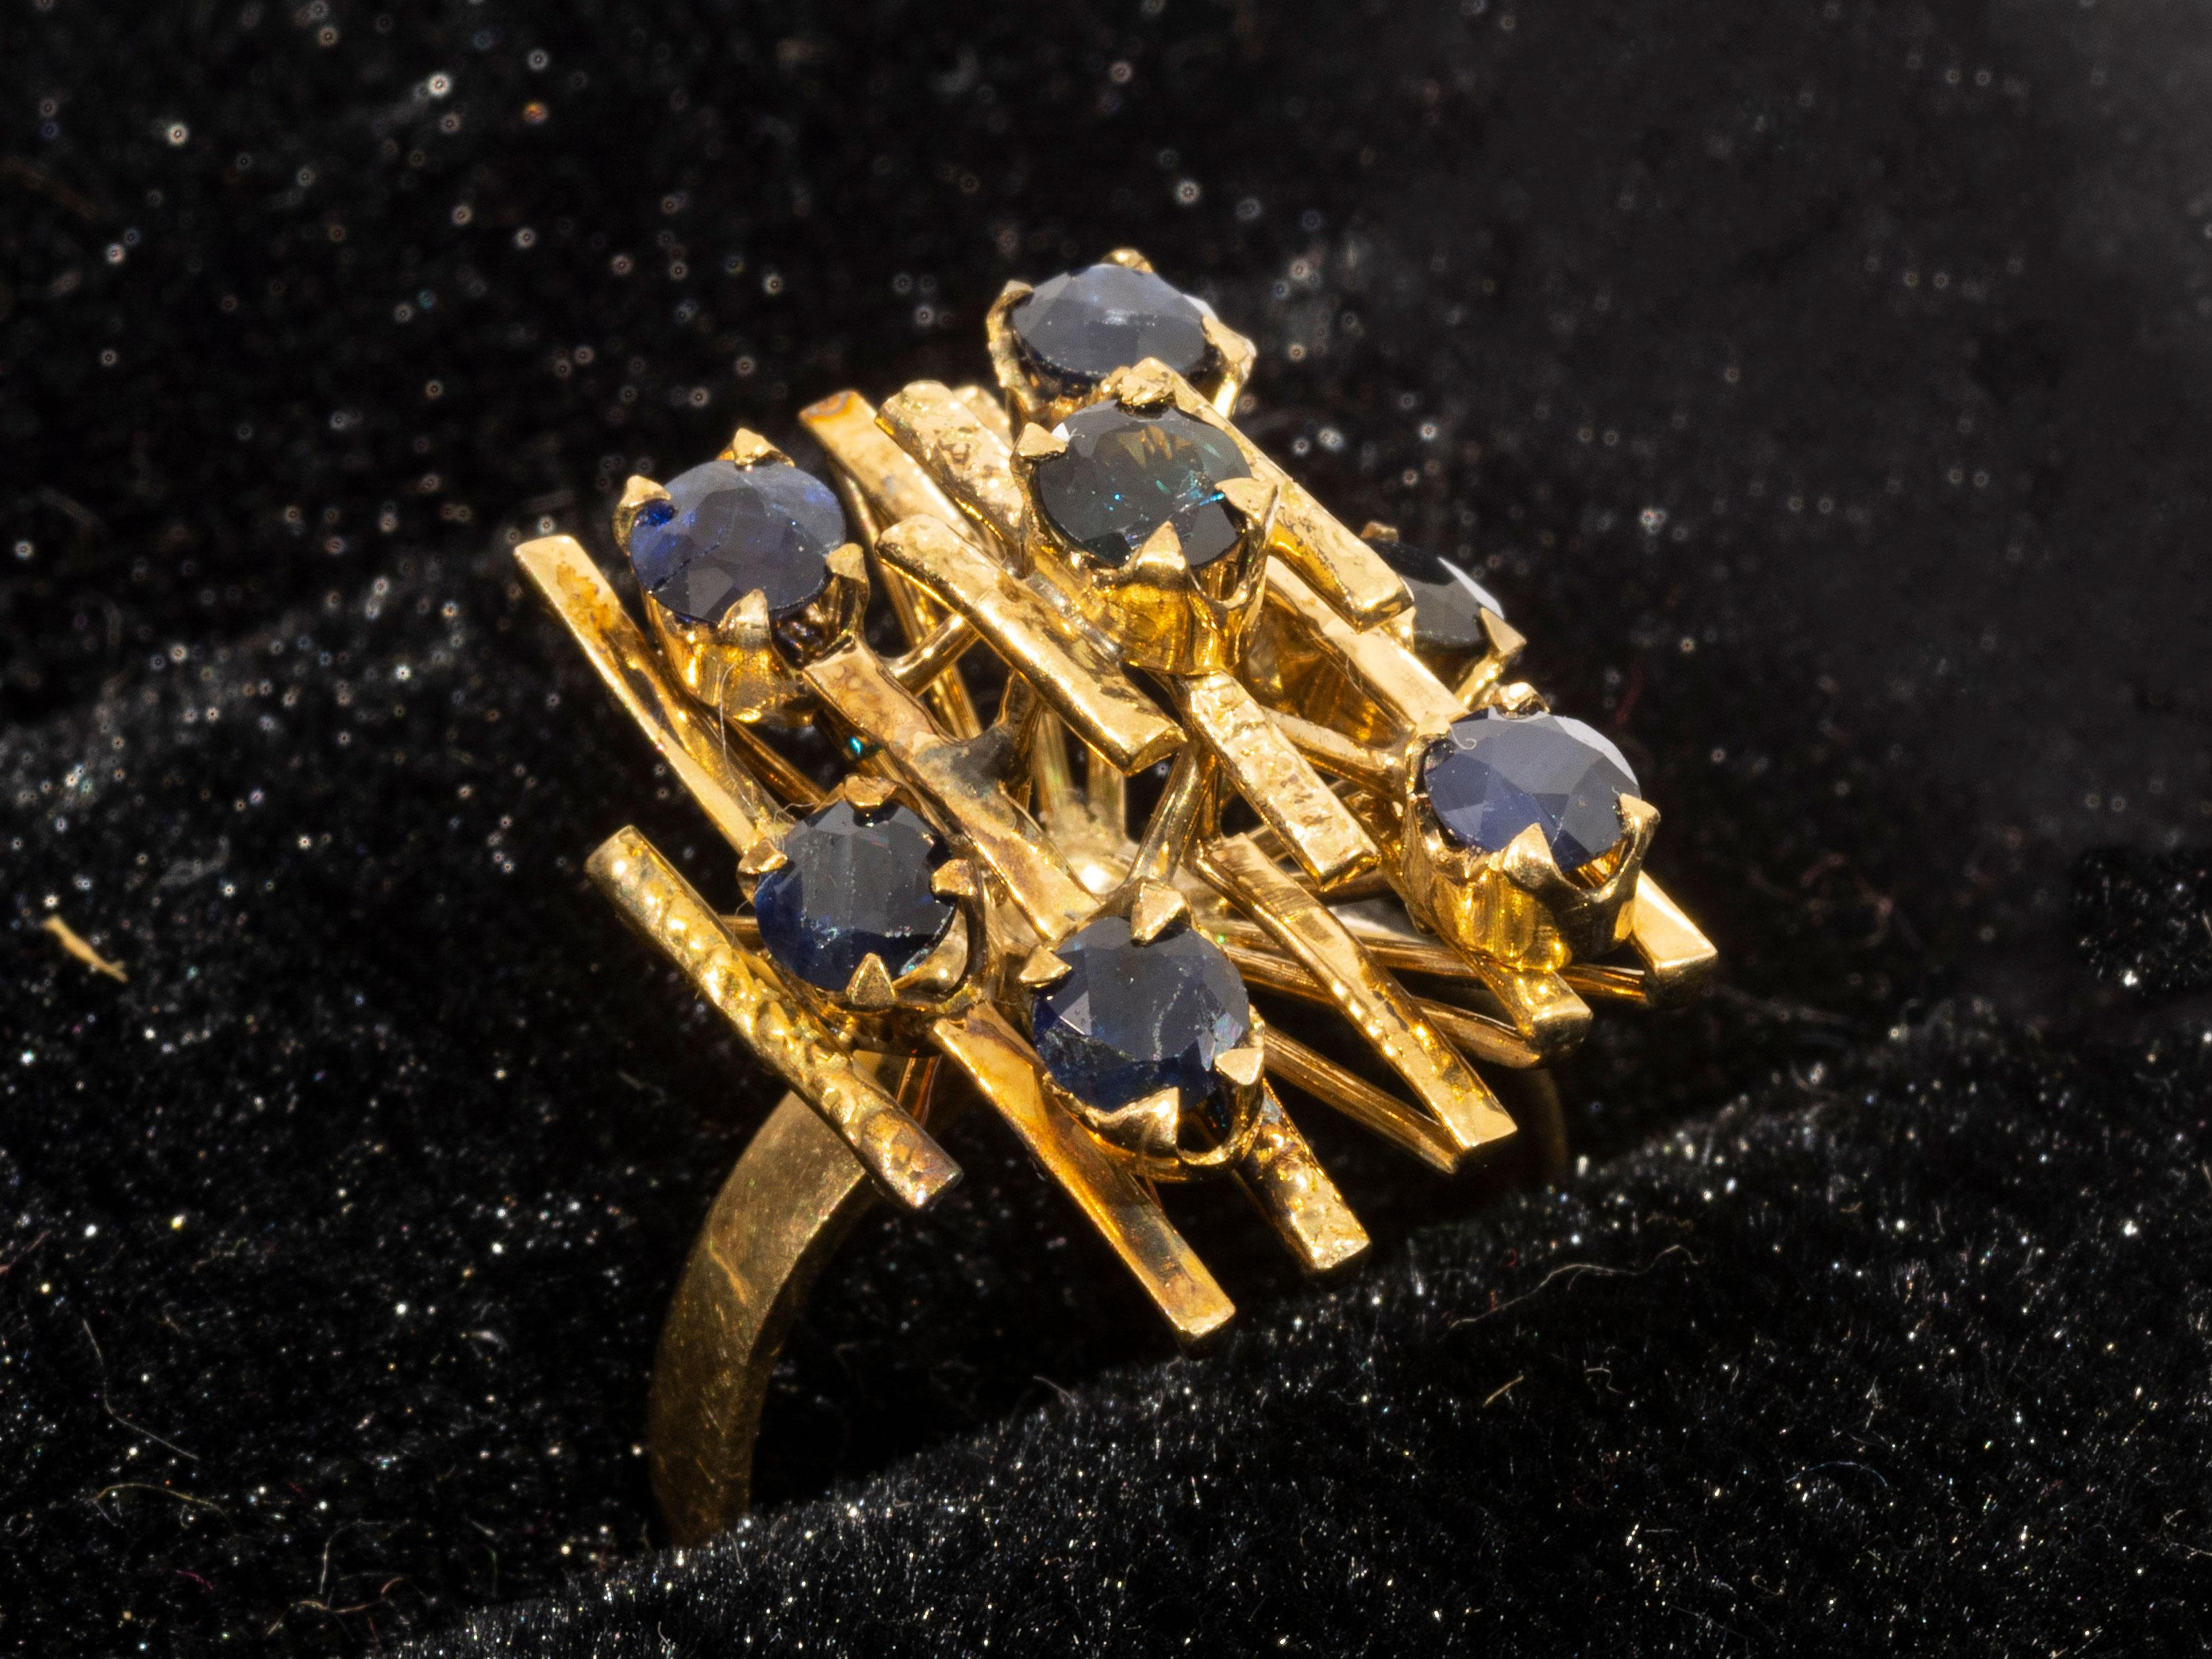 A 9kt Gold Ring set with Sapphires, total weight 5.25g